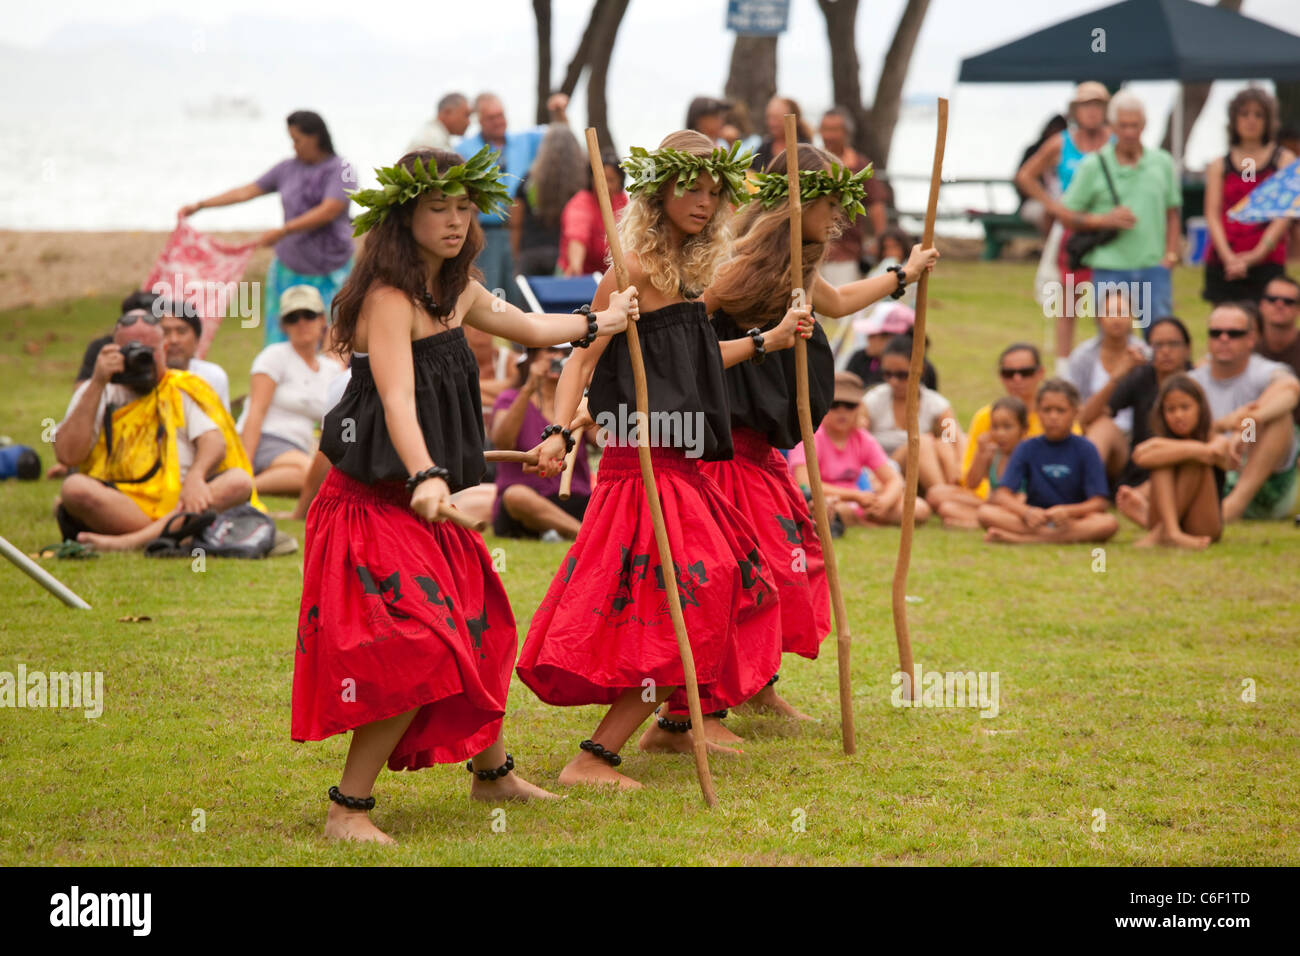 Te Mana o Te Moana 'Spirit of the Sea' 2011 voyage of 7 sailing canoes from the South Pacific. Celebration - Stock Image